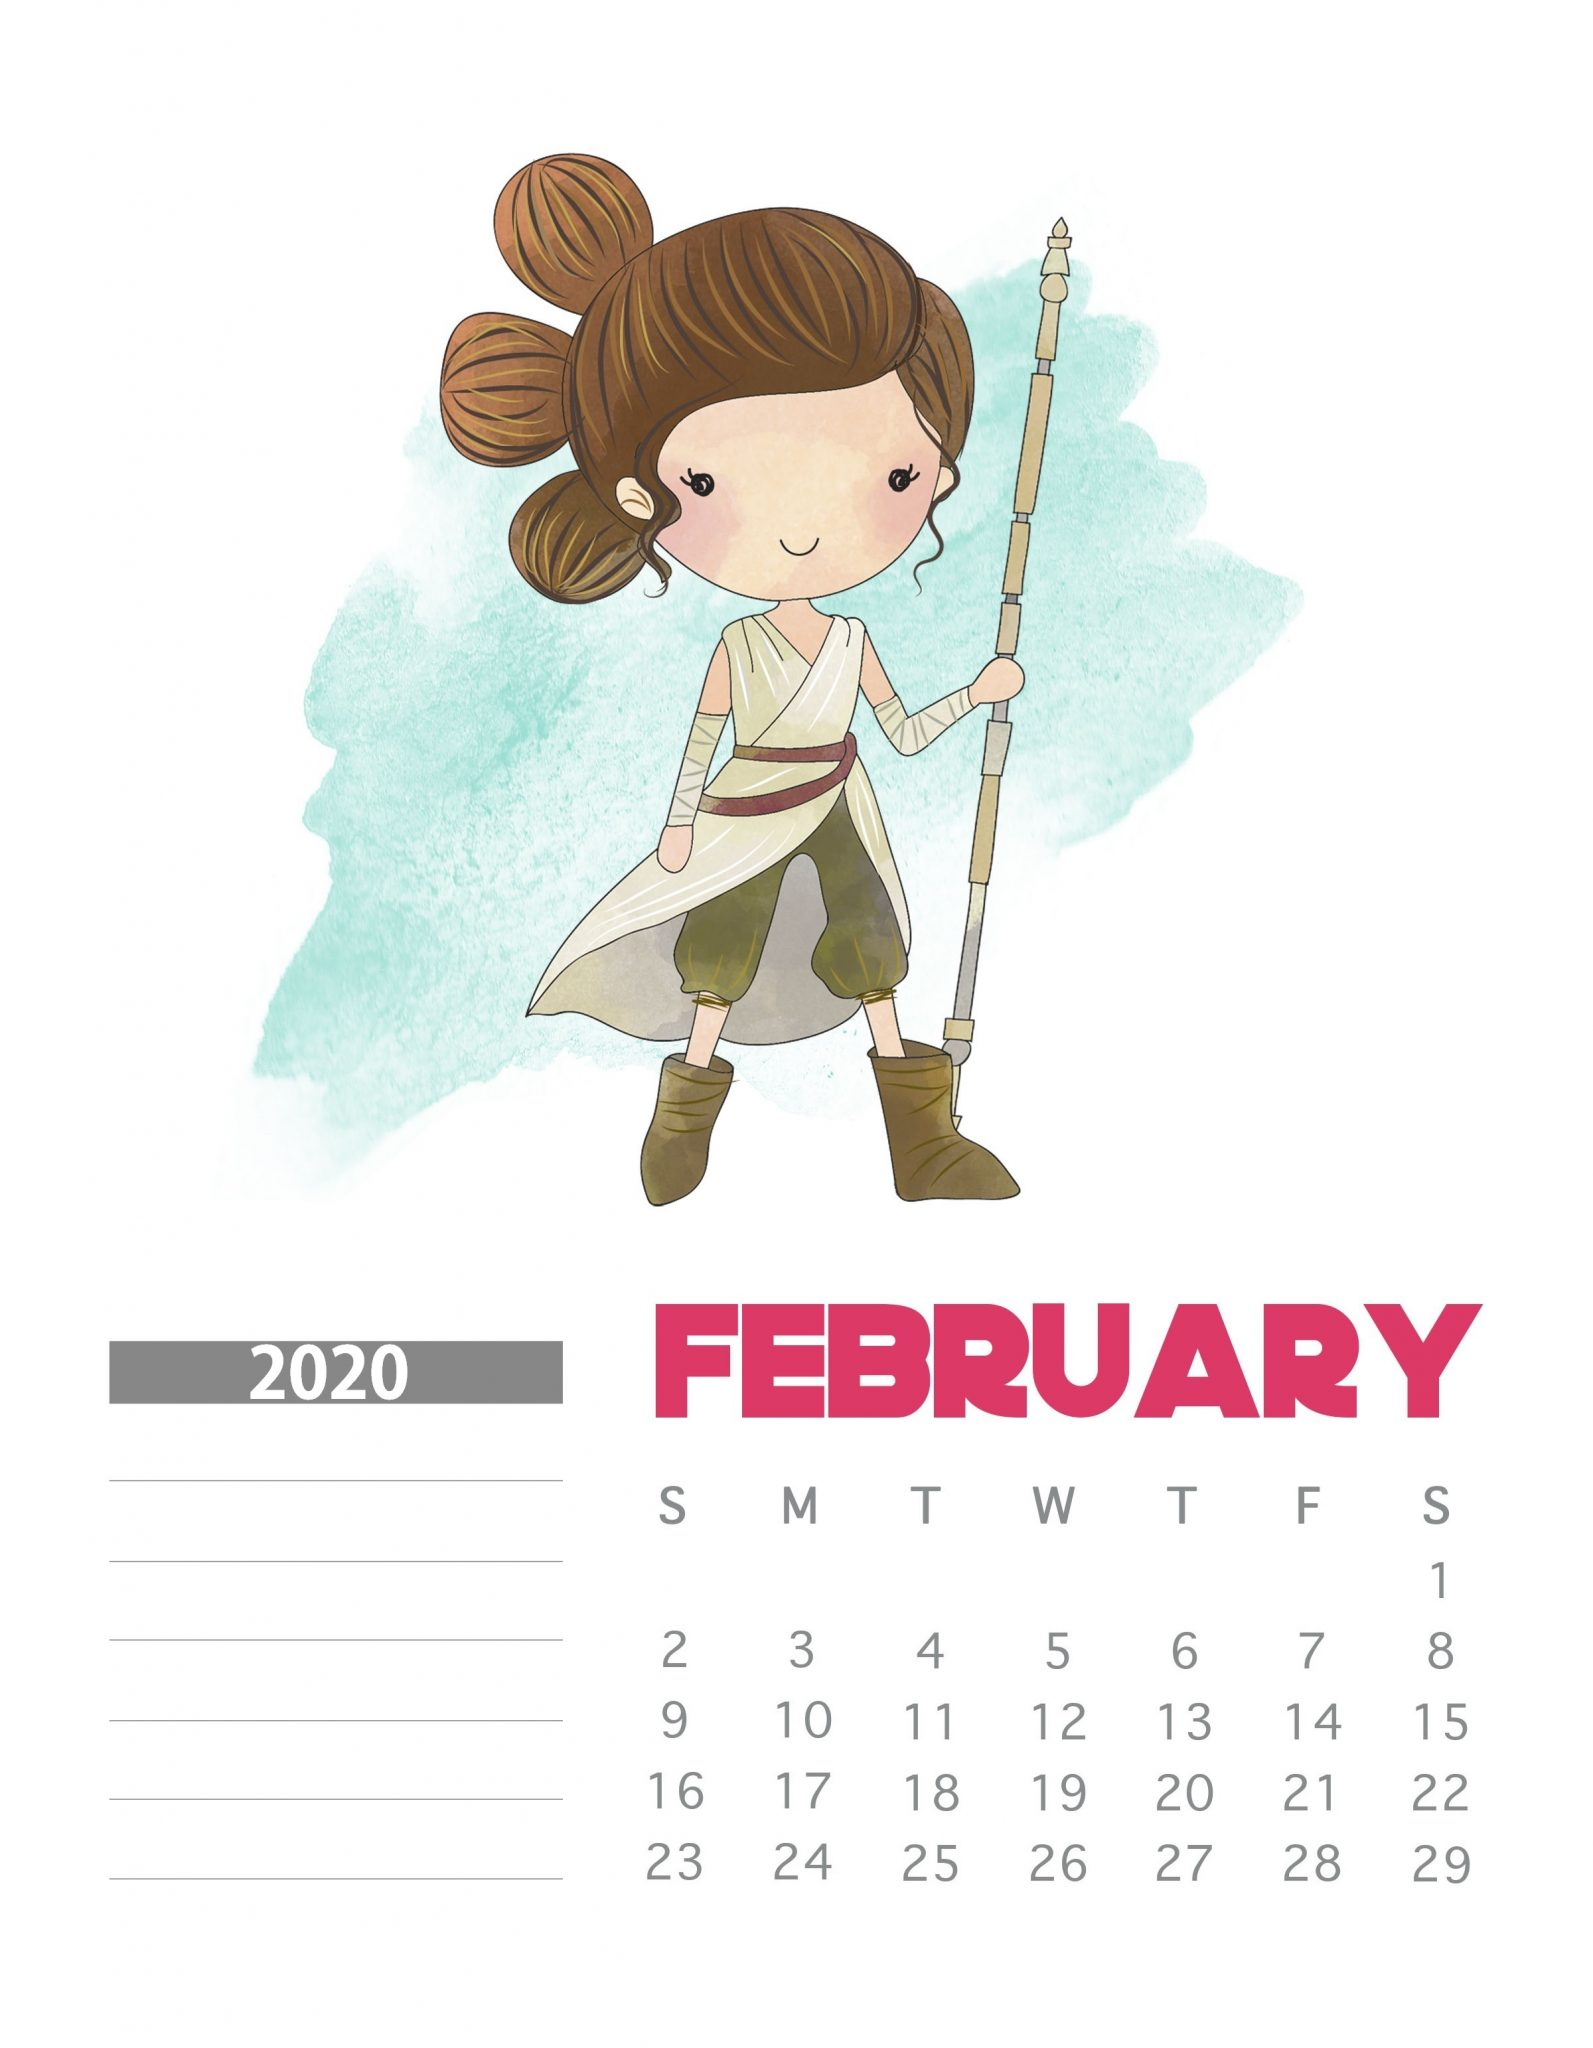 Star Wars February 2020 Calendar Design